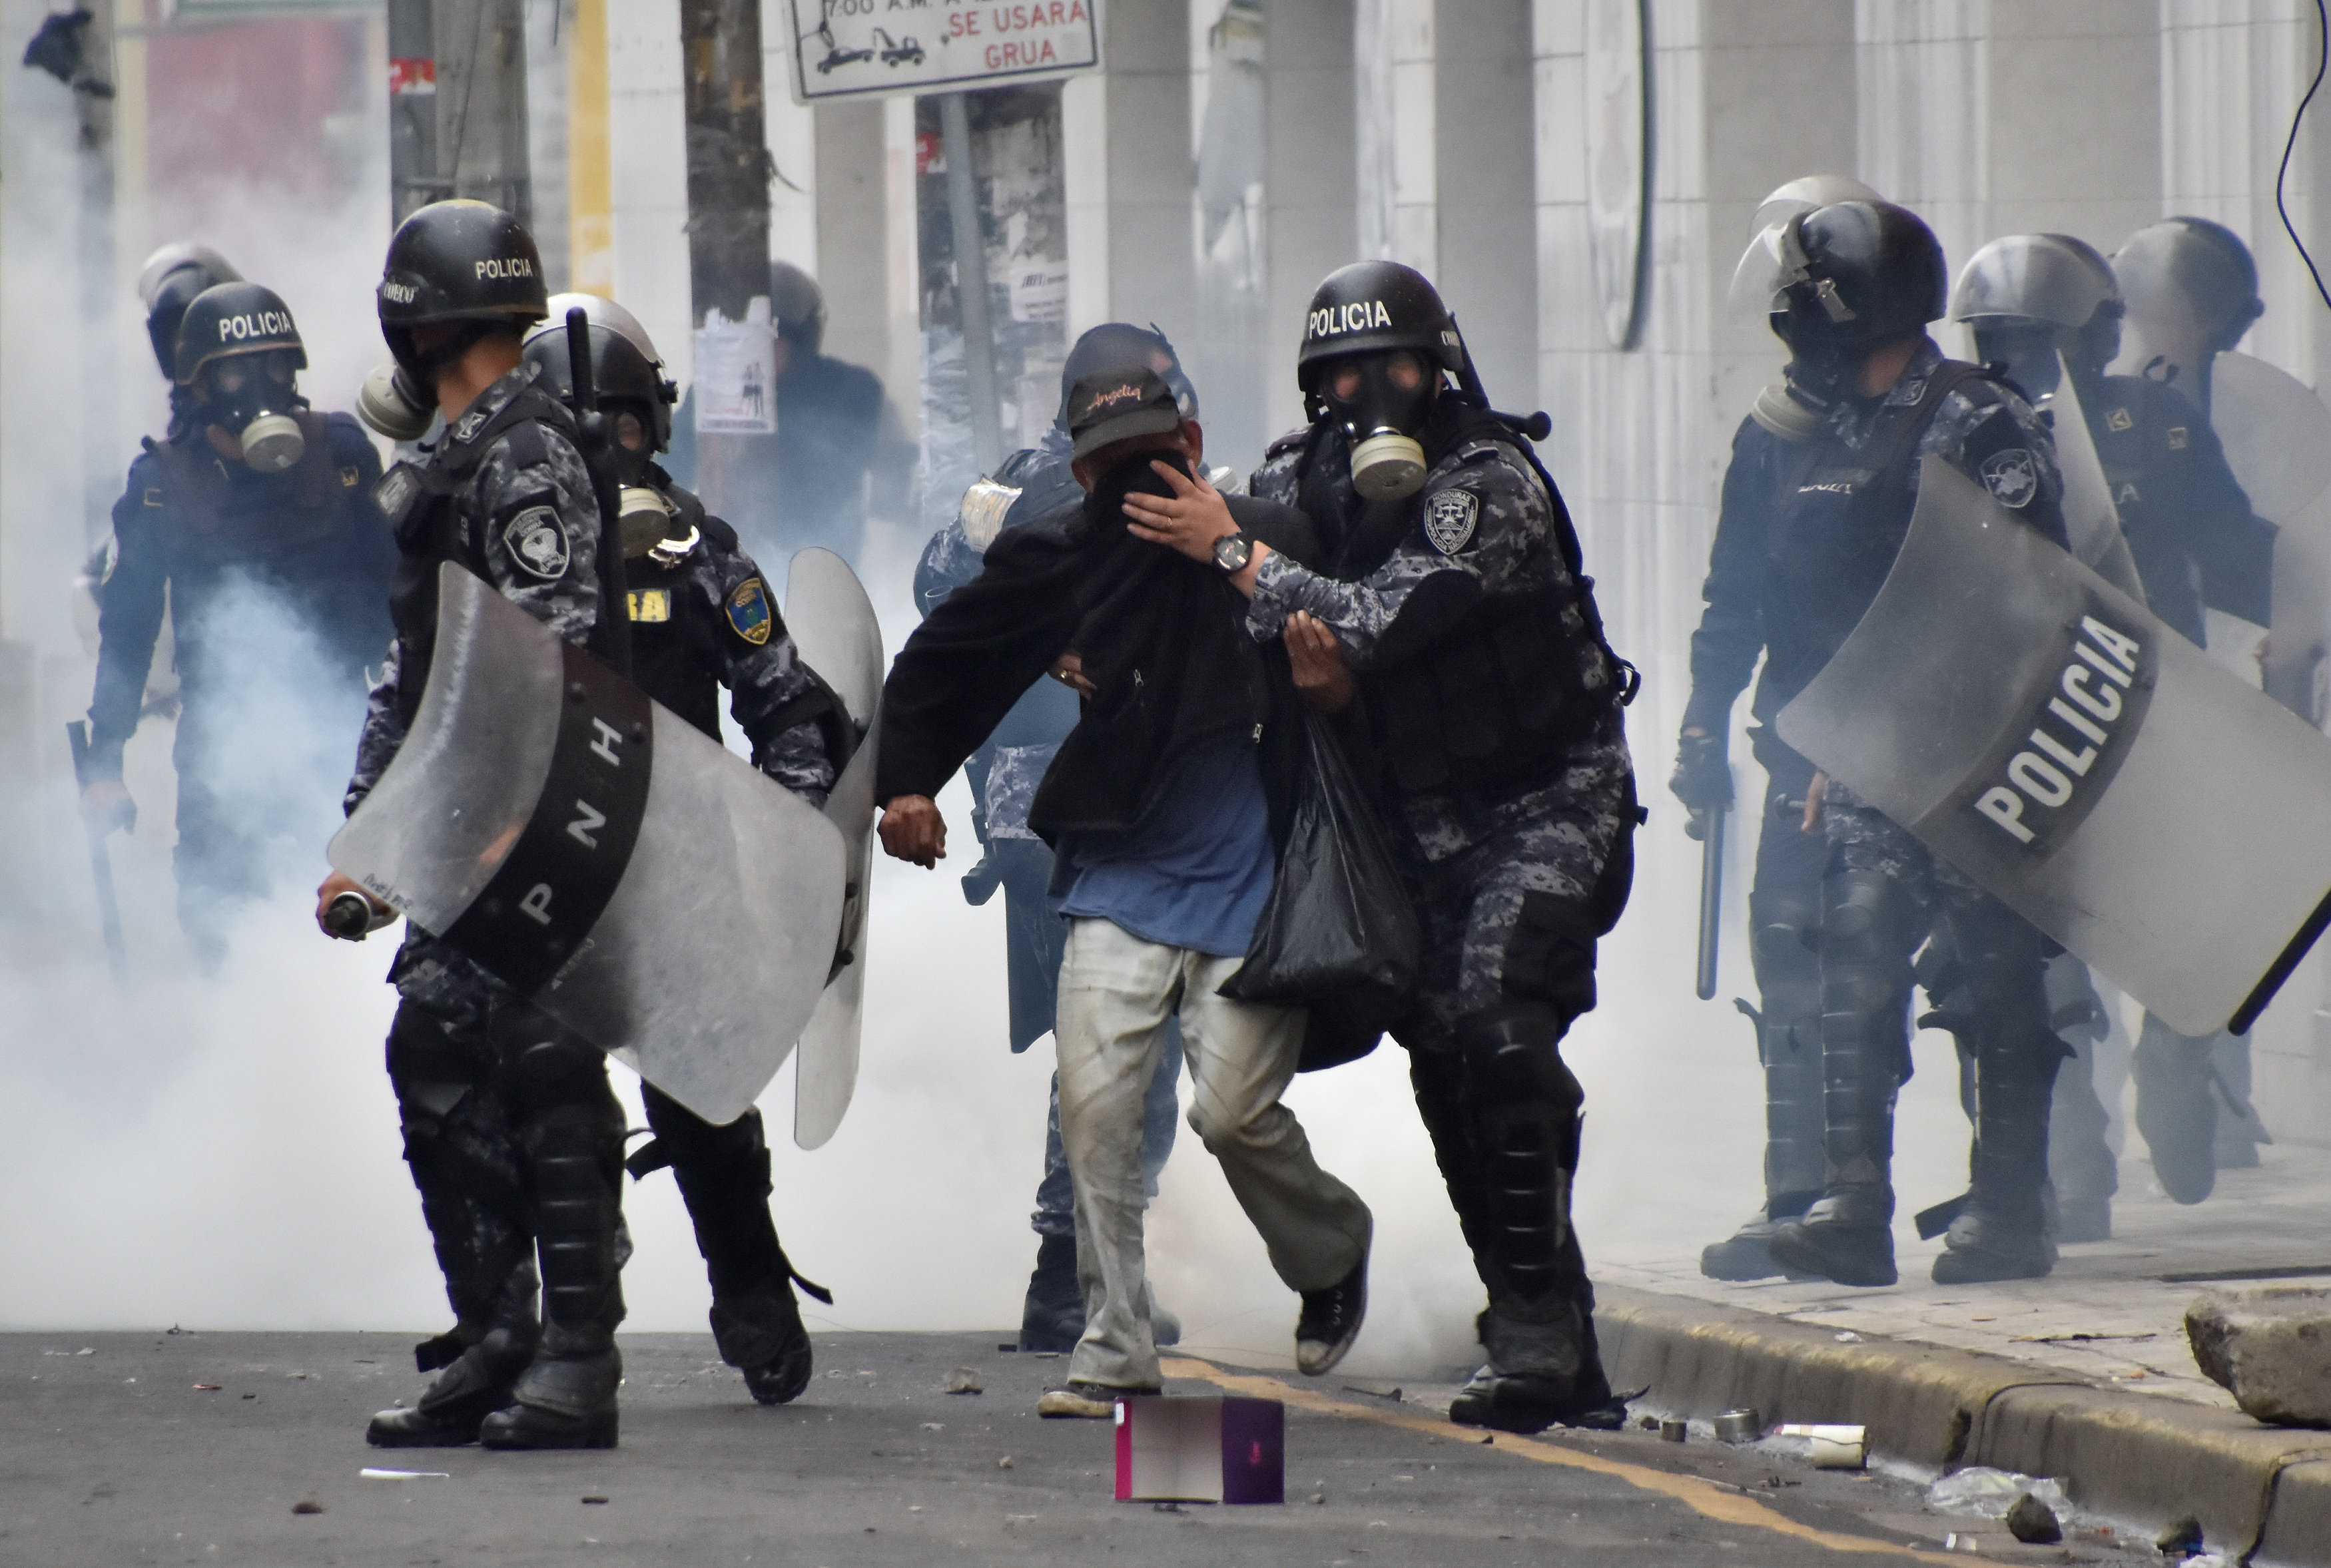 Police help a pedestrian overcome by tear gas as supporters of Salvador Nasralla, presidential candidate for the Opposition Alliance Against the Dictatorship, clash with police during a protest caused by the delayed vote count for the presidential election in San Pedro Sula, Honduras December 1, 2017. REUTERS/Moises Ayala